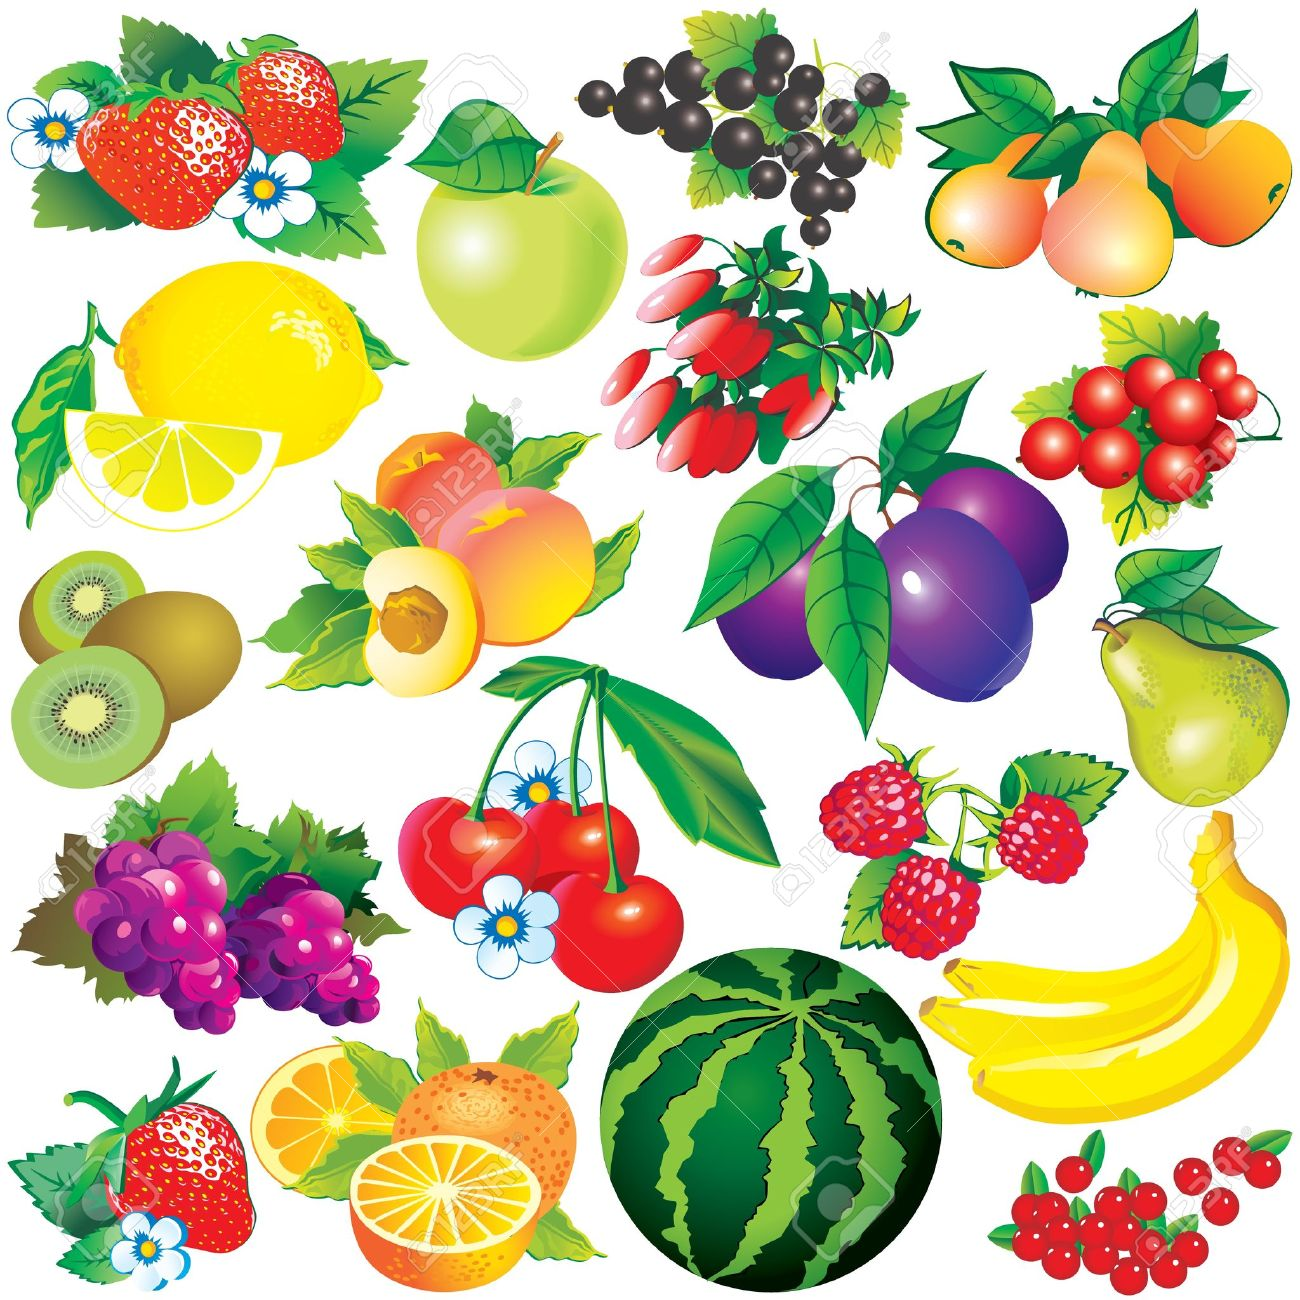 Juicy fruits  Healthy food  Vector art-illustration on a white background Stock Vector - 12842065